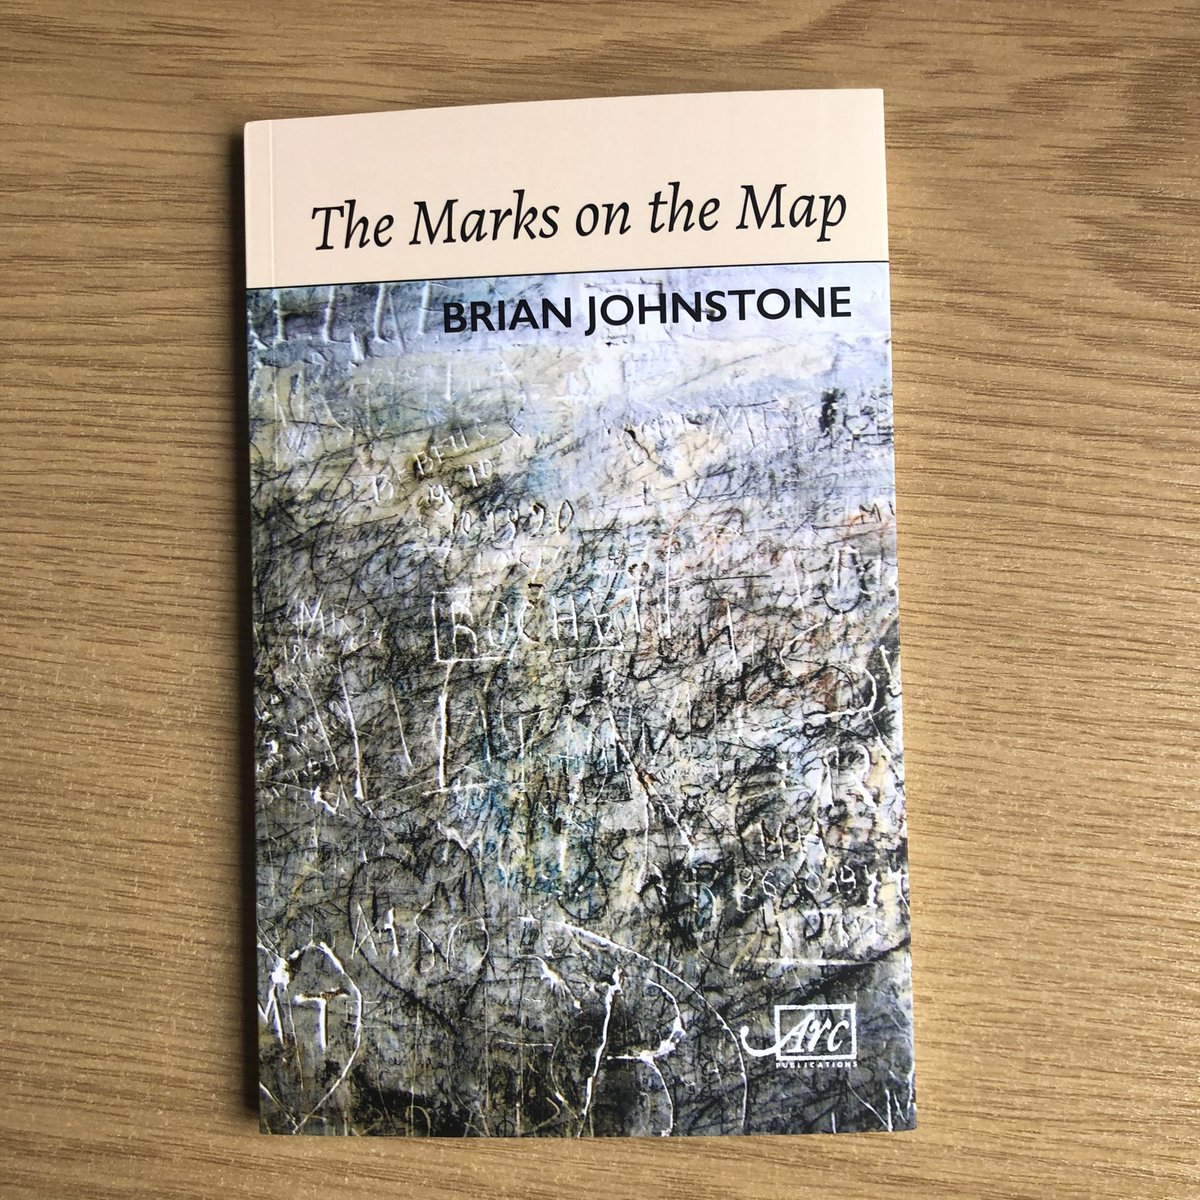 test Twitter Media - We're so sad to hear of the death of Scottish poet Brian Johnstone. Sharing a poem from his 2021 collection @Arc_Poetry  The Marks on the Map. A reminder that people can leave a  long long trace on the landscape. https://t.co/LOrU2VFOOe